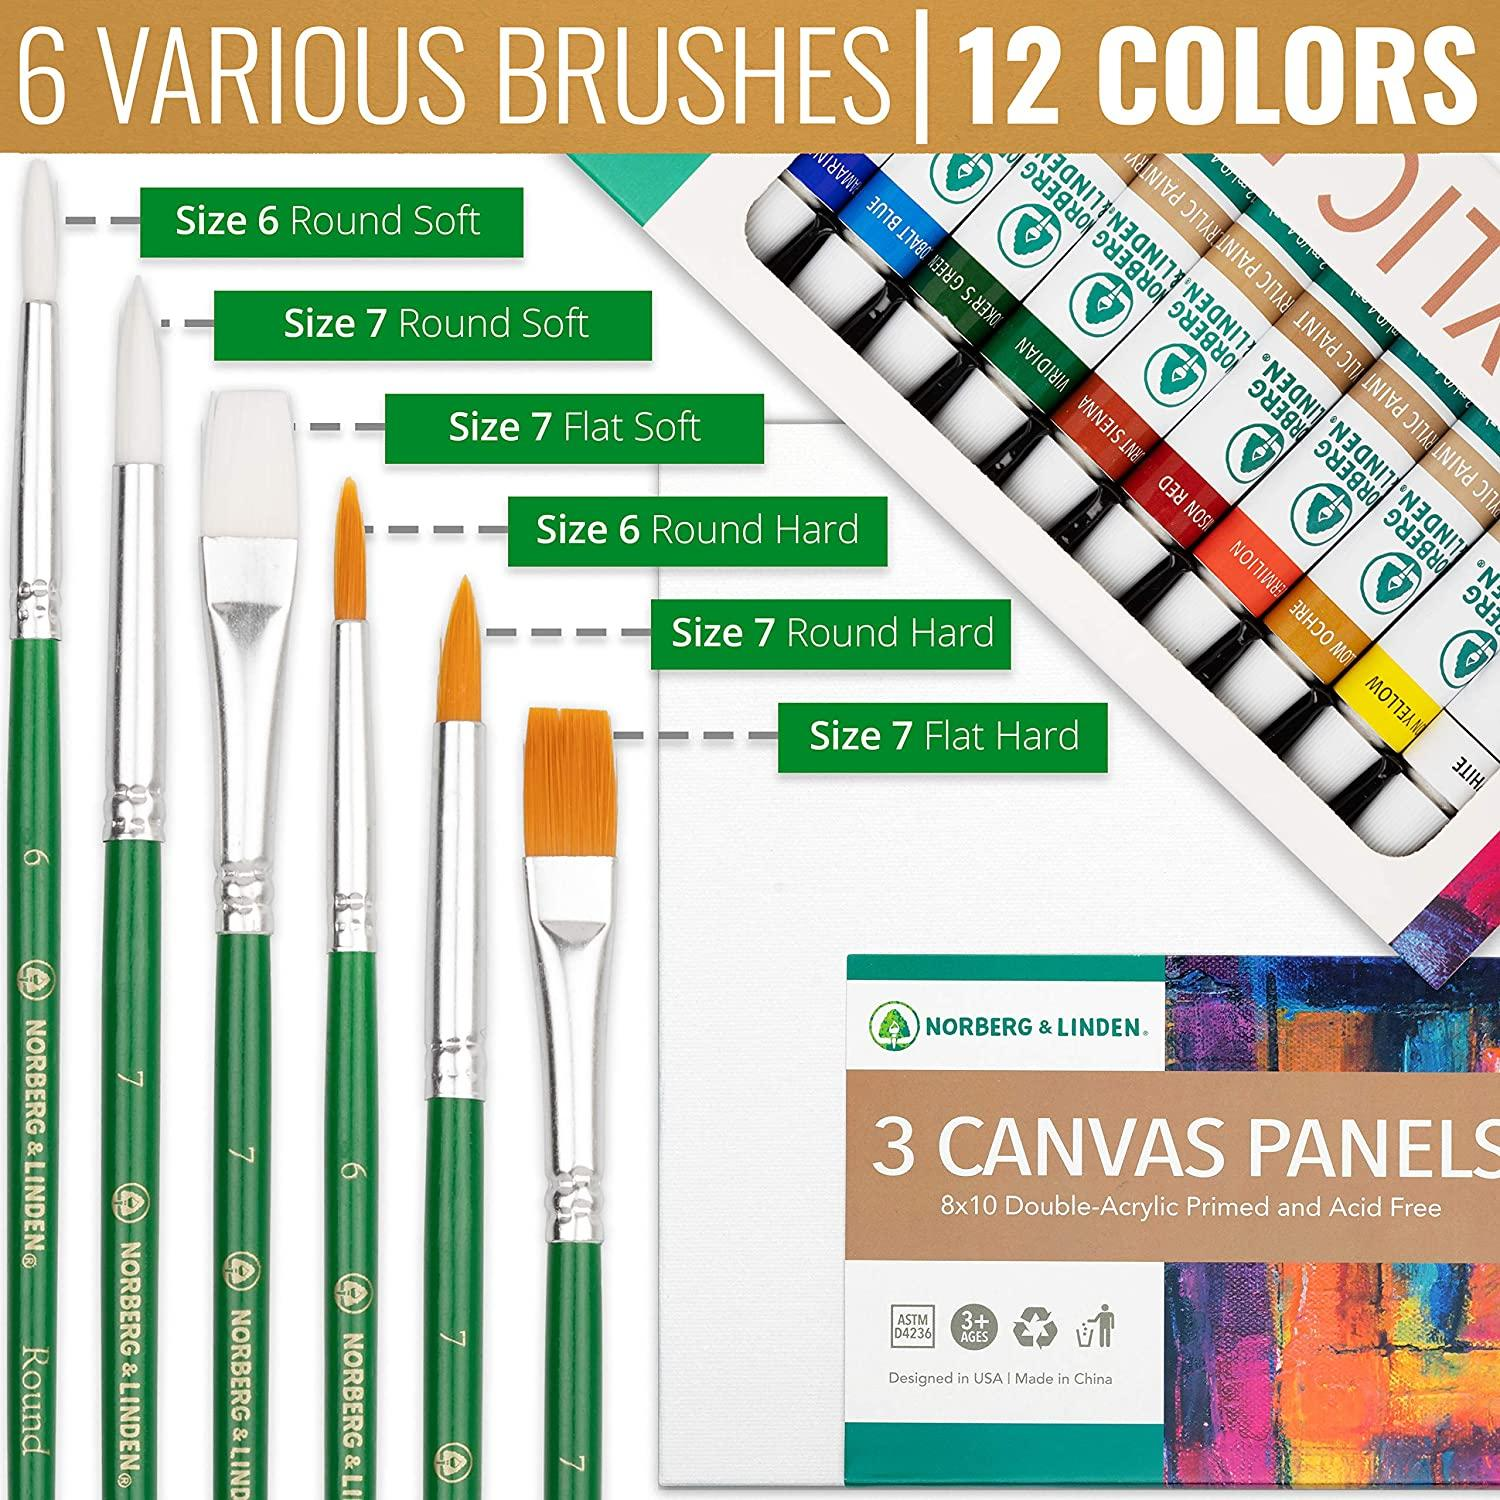 Paint Set with Canvas for Kids and Adults With 12 Vibrant Paints, 6 Painting Brushes, 3 8x10 Canvases, Art Supplies Gifts for Artists, Perfe